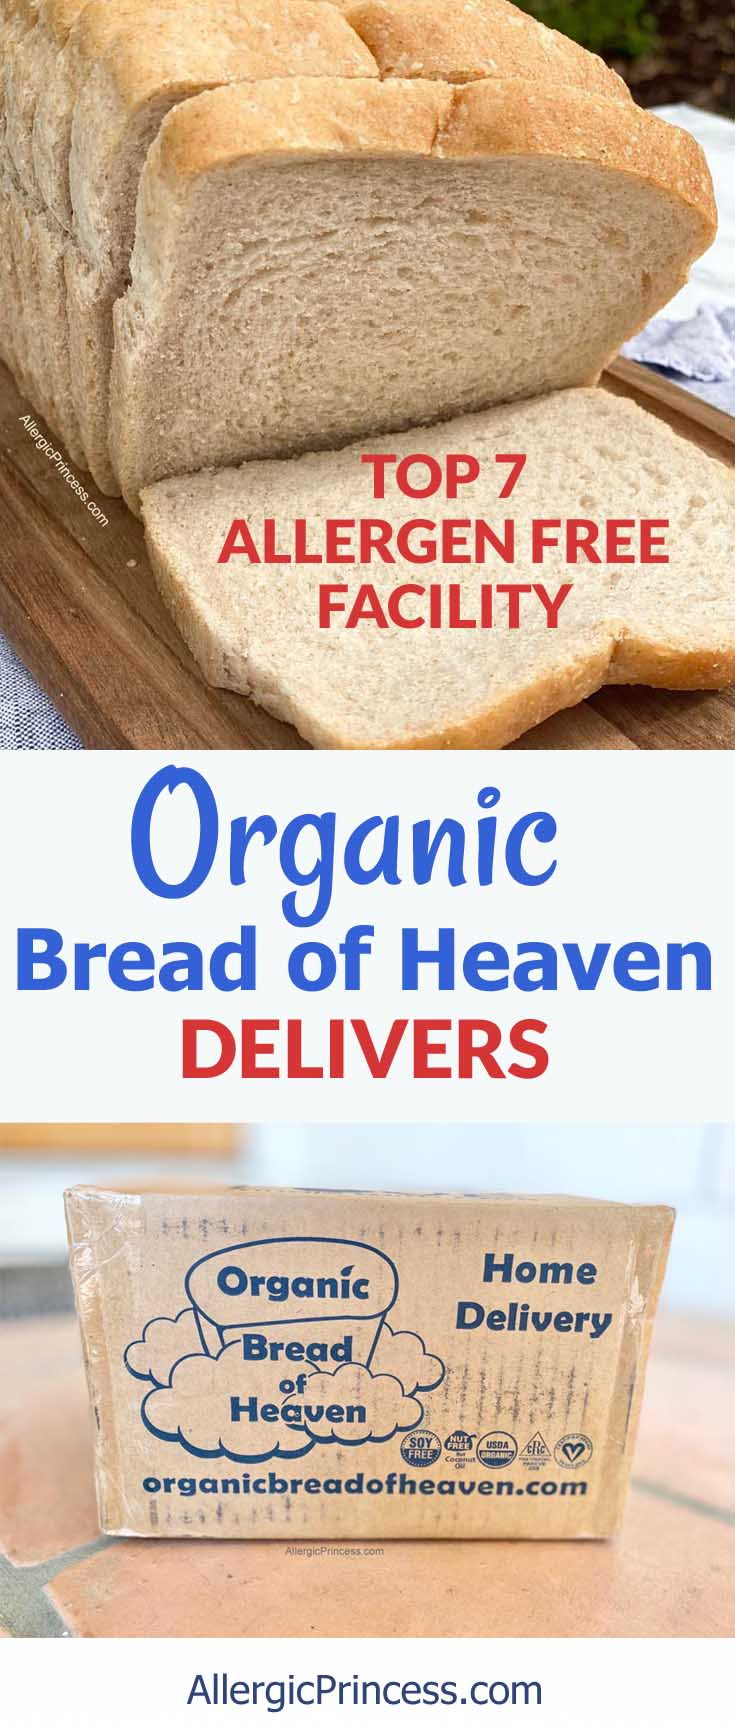 Organic Bread of Heaven Bakery delivers Top 7 allergy free breads